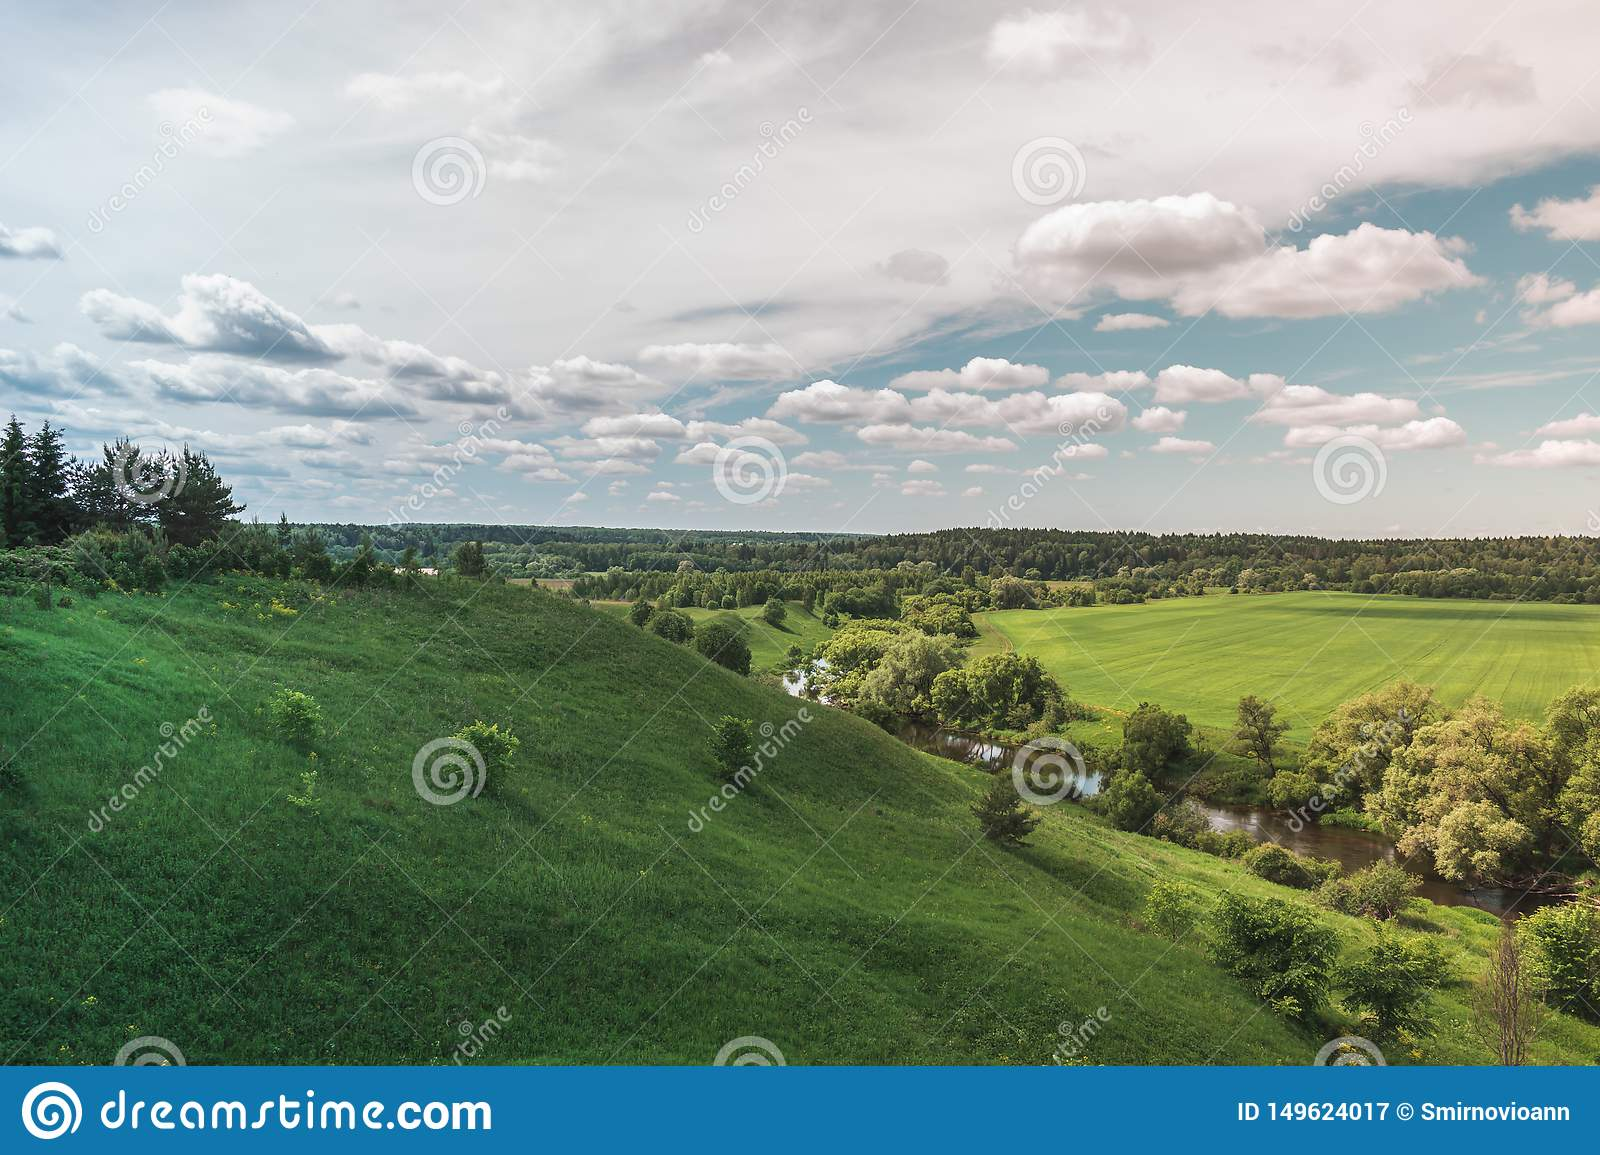 Colorful Bright Sunny Green Field River Summer Landscape With Blue Cloudy Sky, Trees And Hills